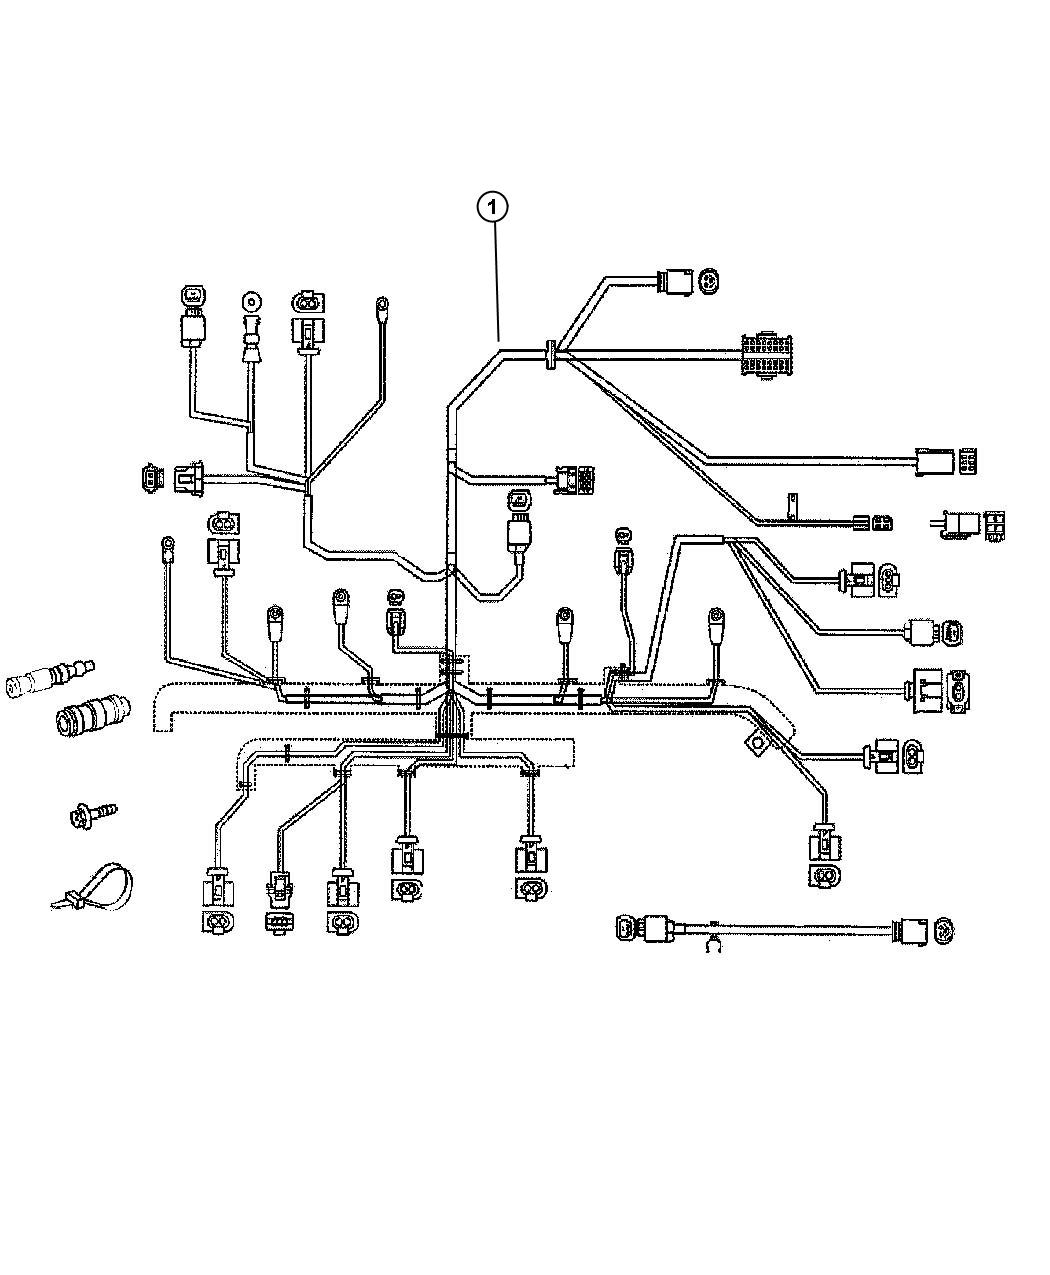 00i81794 Jeep Patriot Wiring Diagram Avh X Bs on